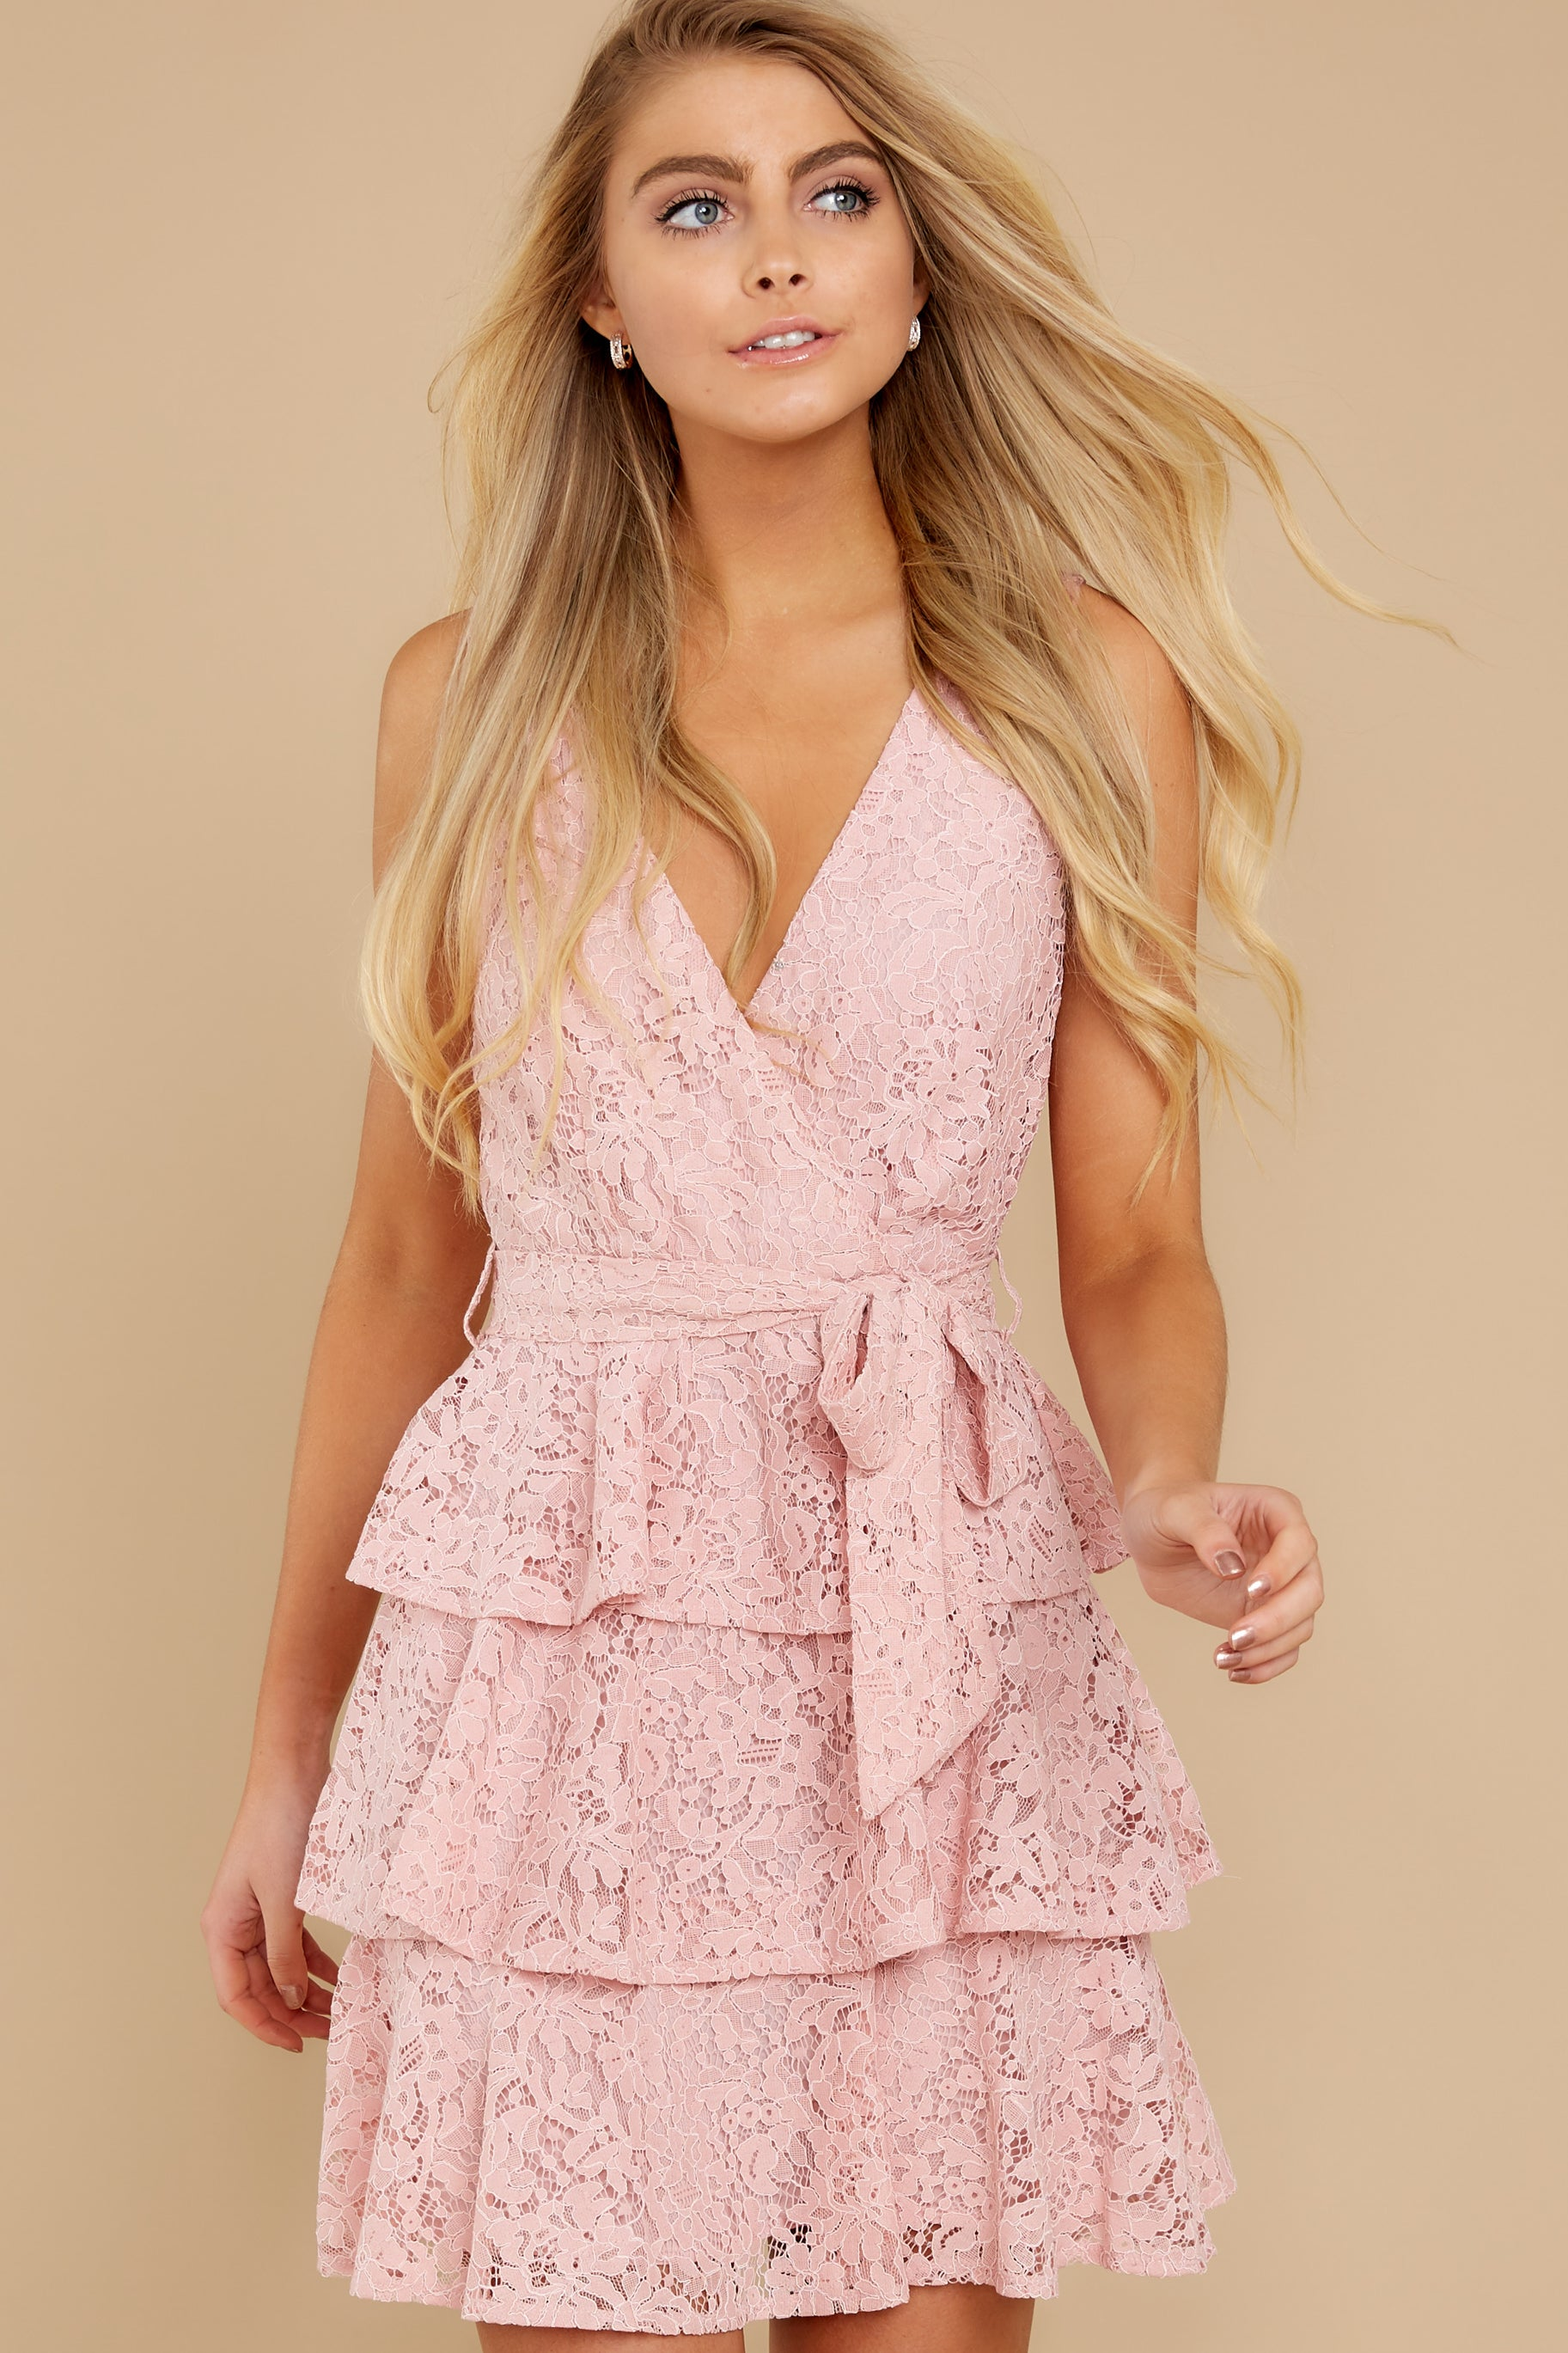 7 Take My Hand Light Pink Lace Dress at reddress.com